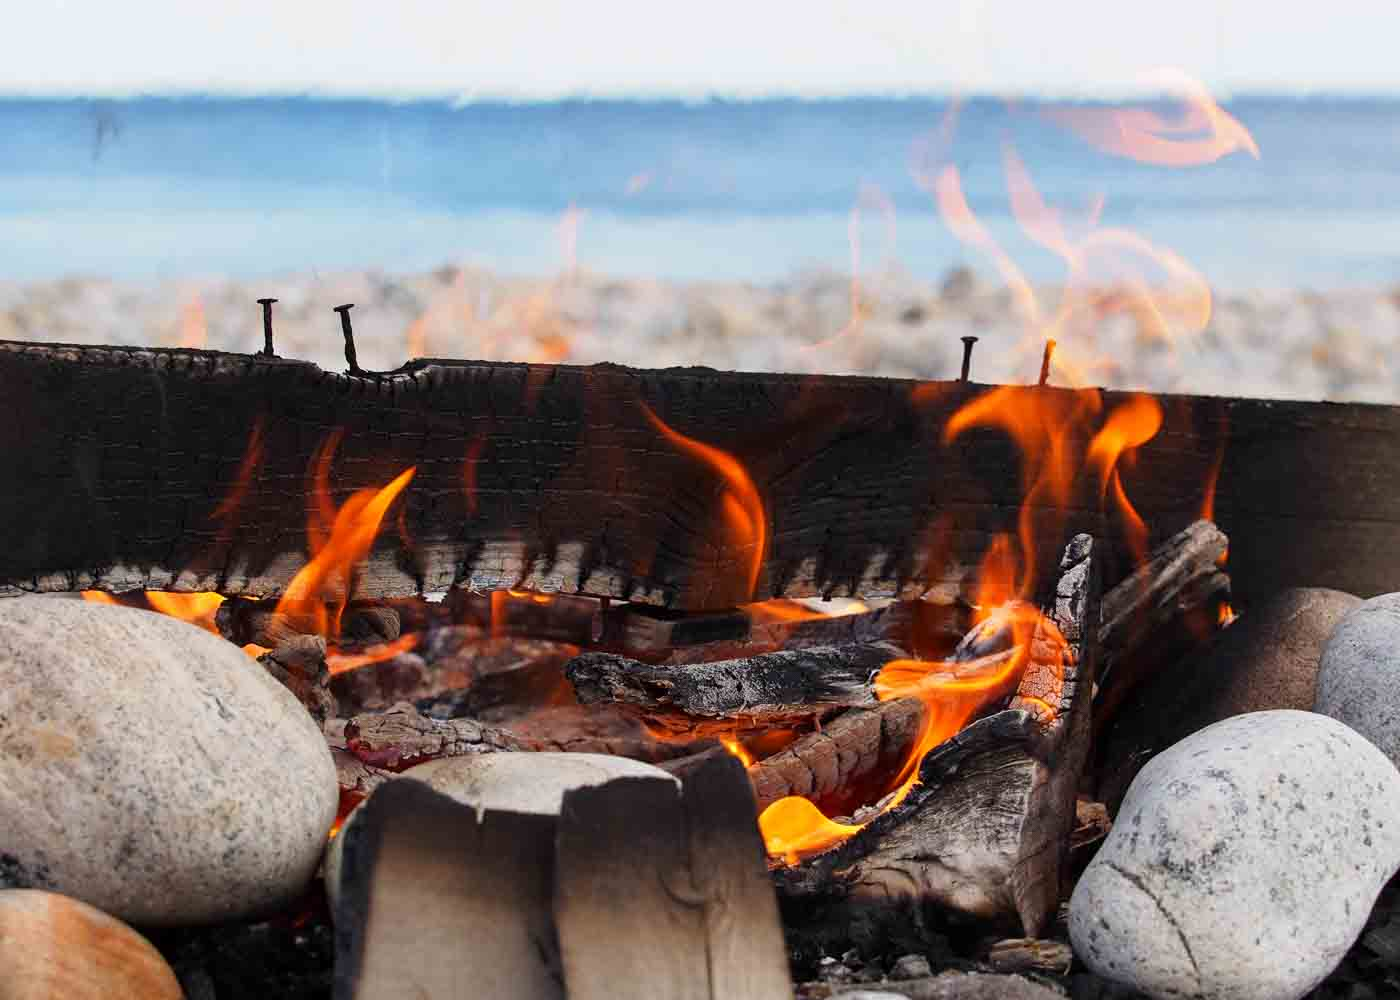 Beach picnics (complete with s'more roasting fires!) are one of our favorite ways of celebrating outdoors.